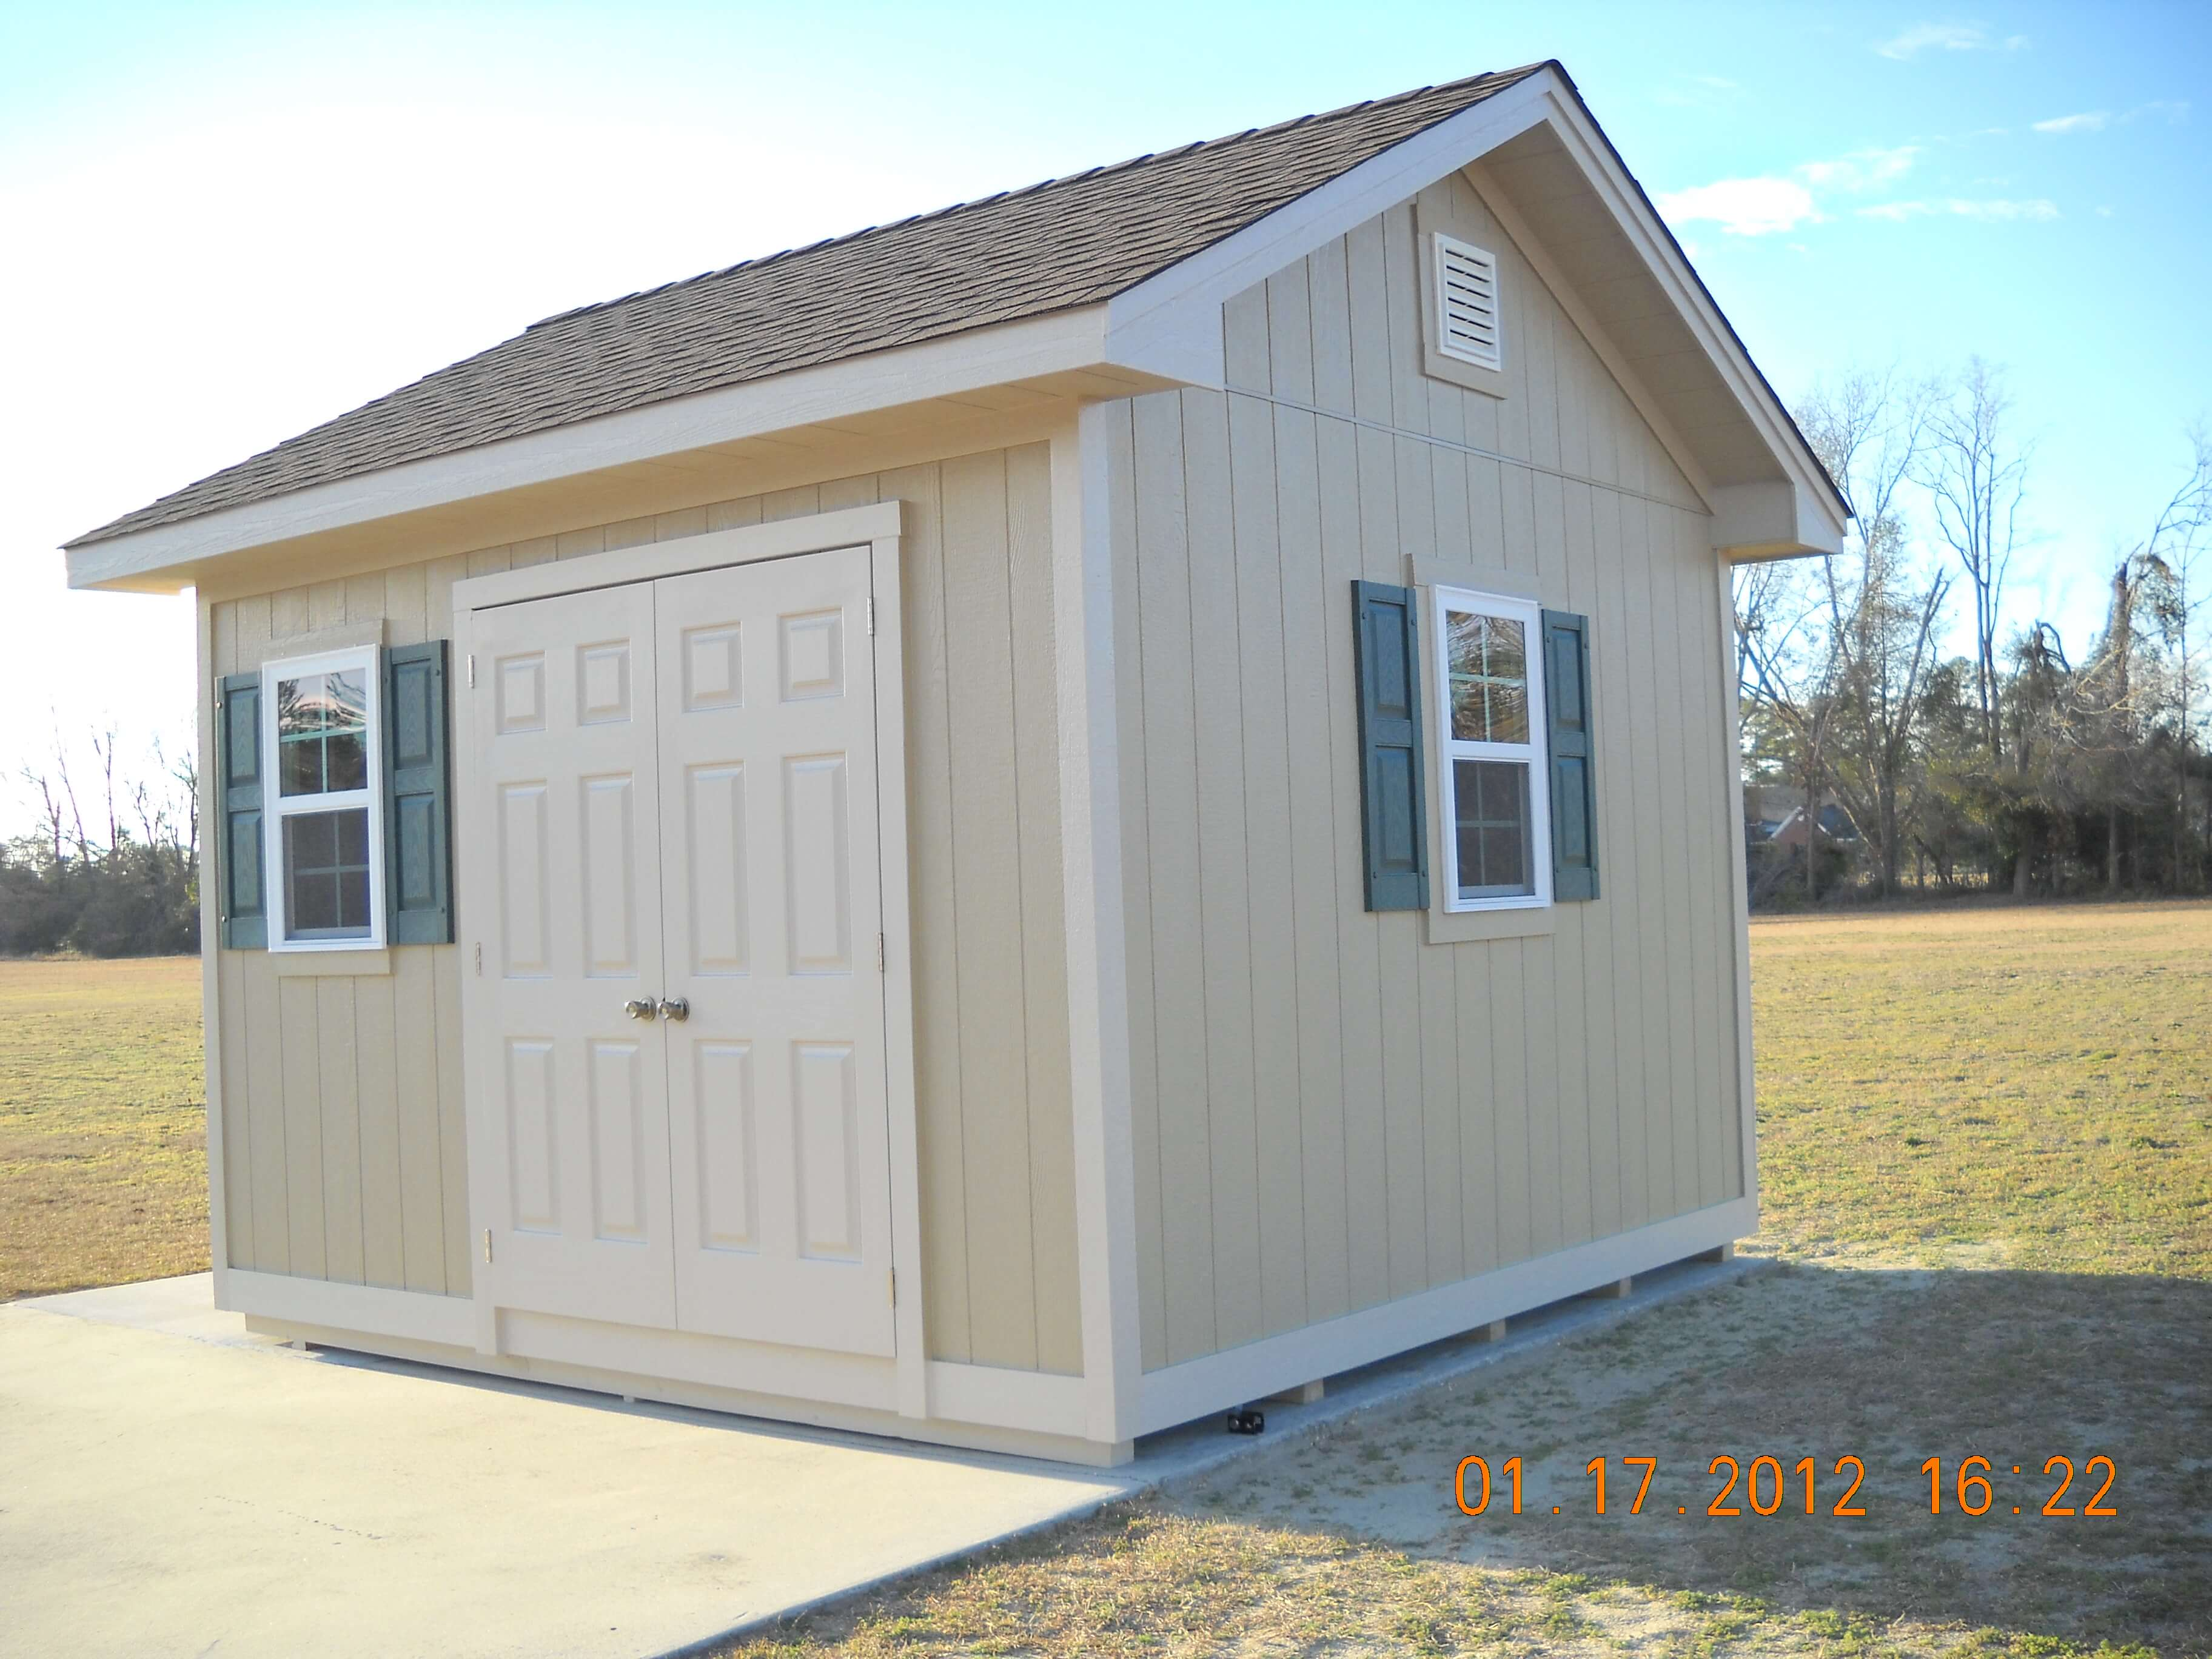 pm area durham raleigh cheely metro shed tuff custom construction sheds blog storage